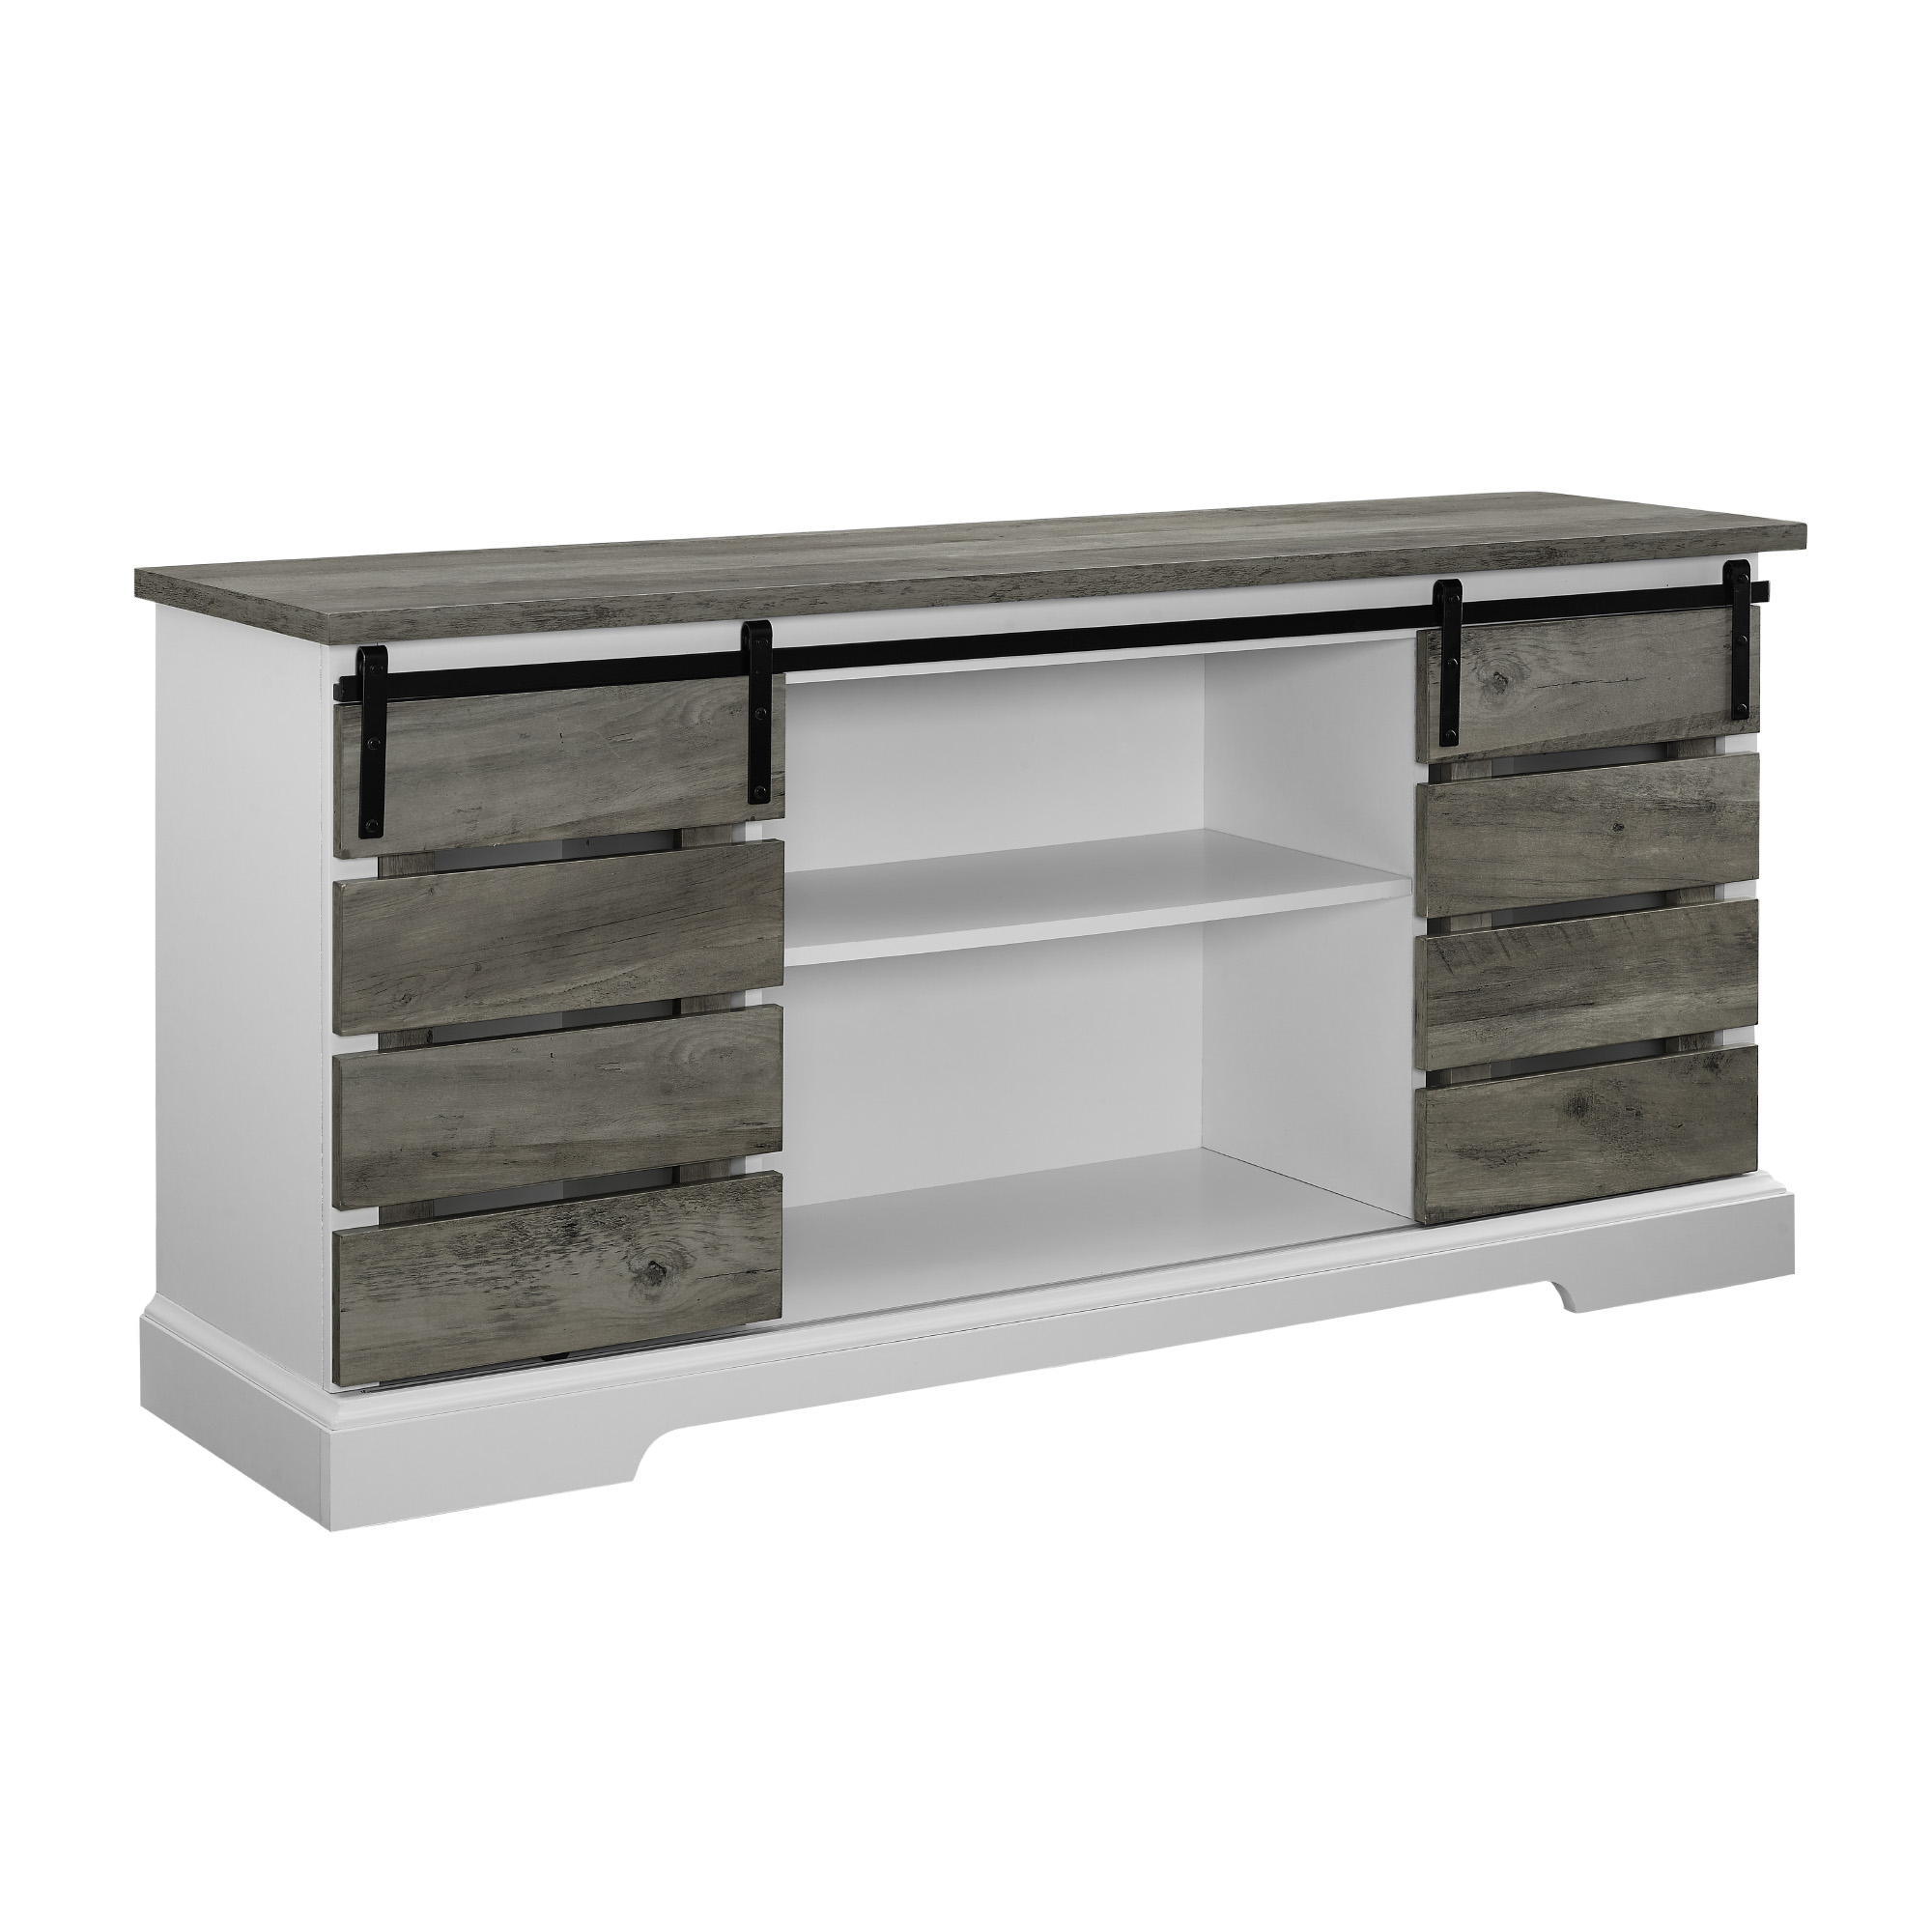 Most Popular Woven Paths Sliding Slat Door Tv Stand For Tv's Up To 64 Regarding Woven Paths Farmhouse Sliding Barn Door Tv Stands With Multiple Finishes (View 1 of 10)